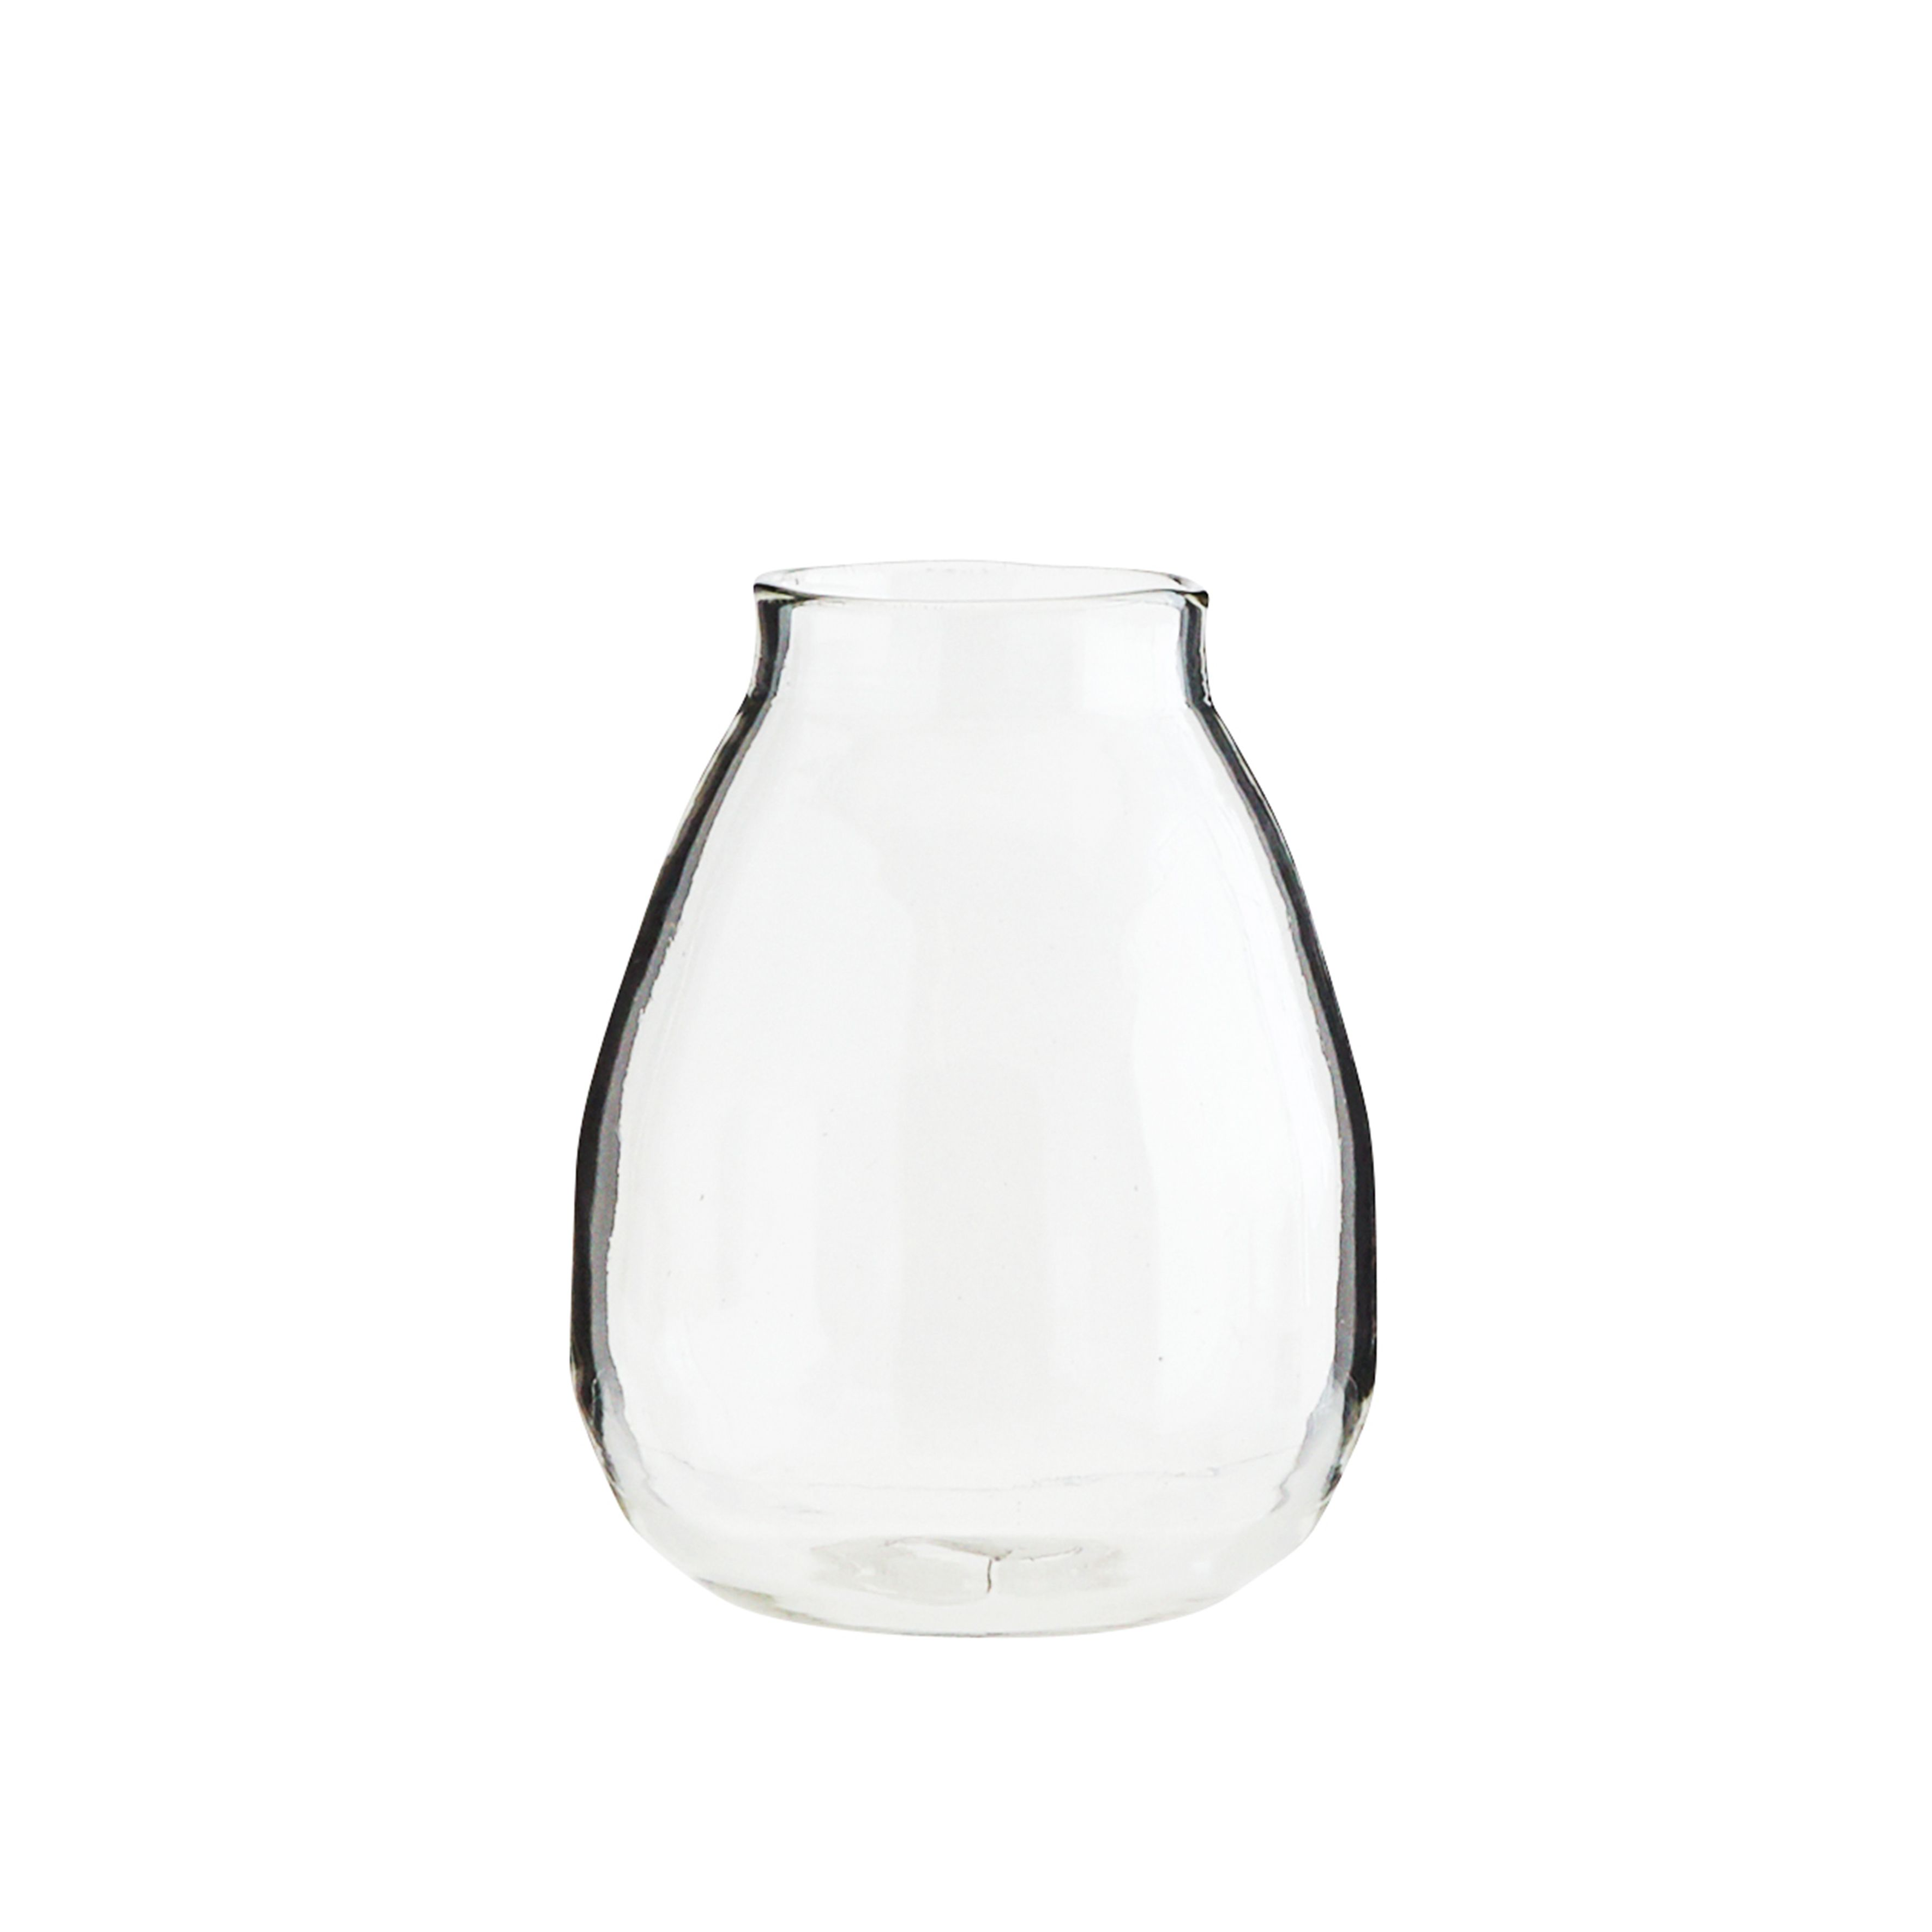 en the by vases blown craftsperson skilled ie glass vase kna cm ber a ikea mouth decoration products is art clear bowls